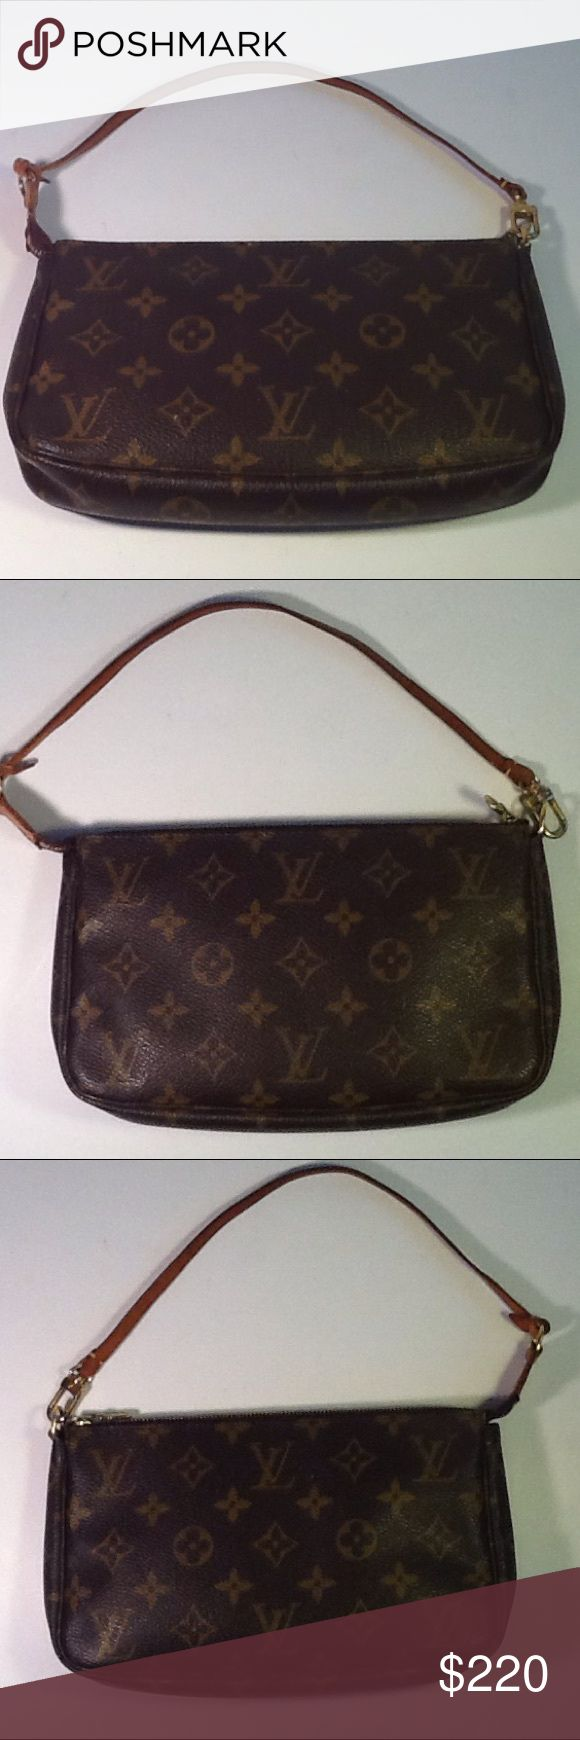 Authentic Louis Vuitton Monogram Pochette Hanbag. The strap showed signs of used. The canvas and inside linen are good. The bag was made in France with a date code VI 1020. Louis Vuitton Bags Clutches & Wristlets